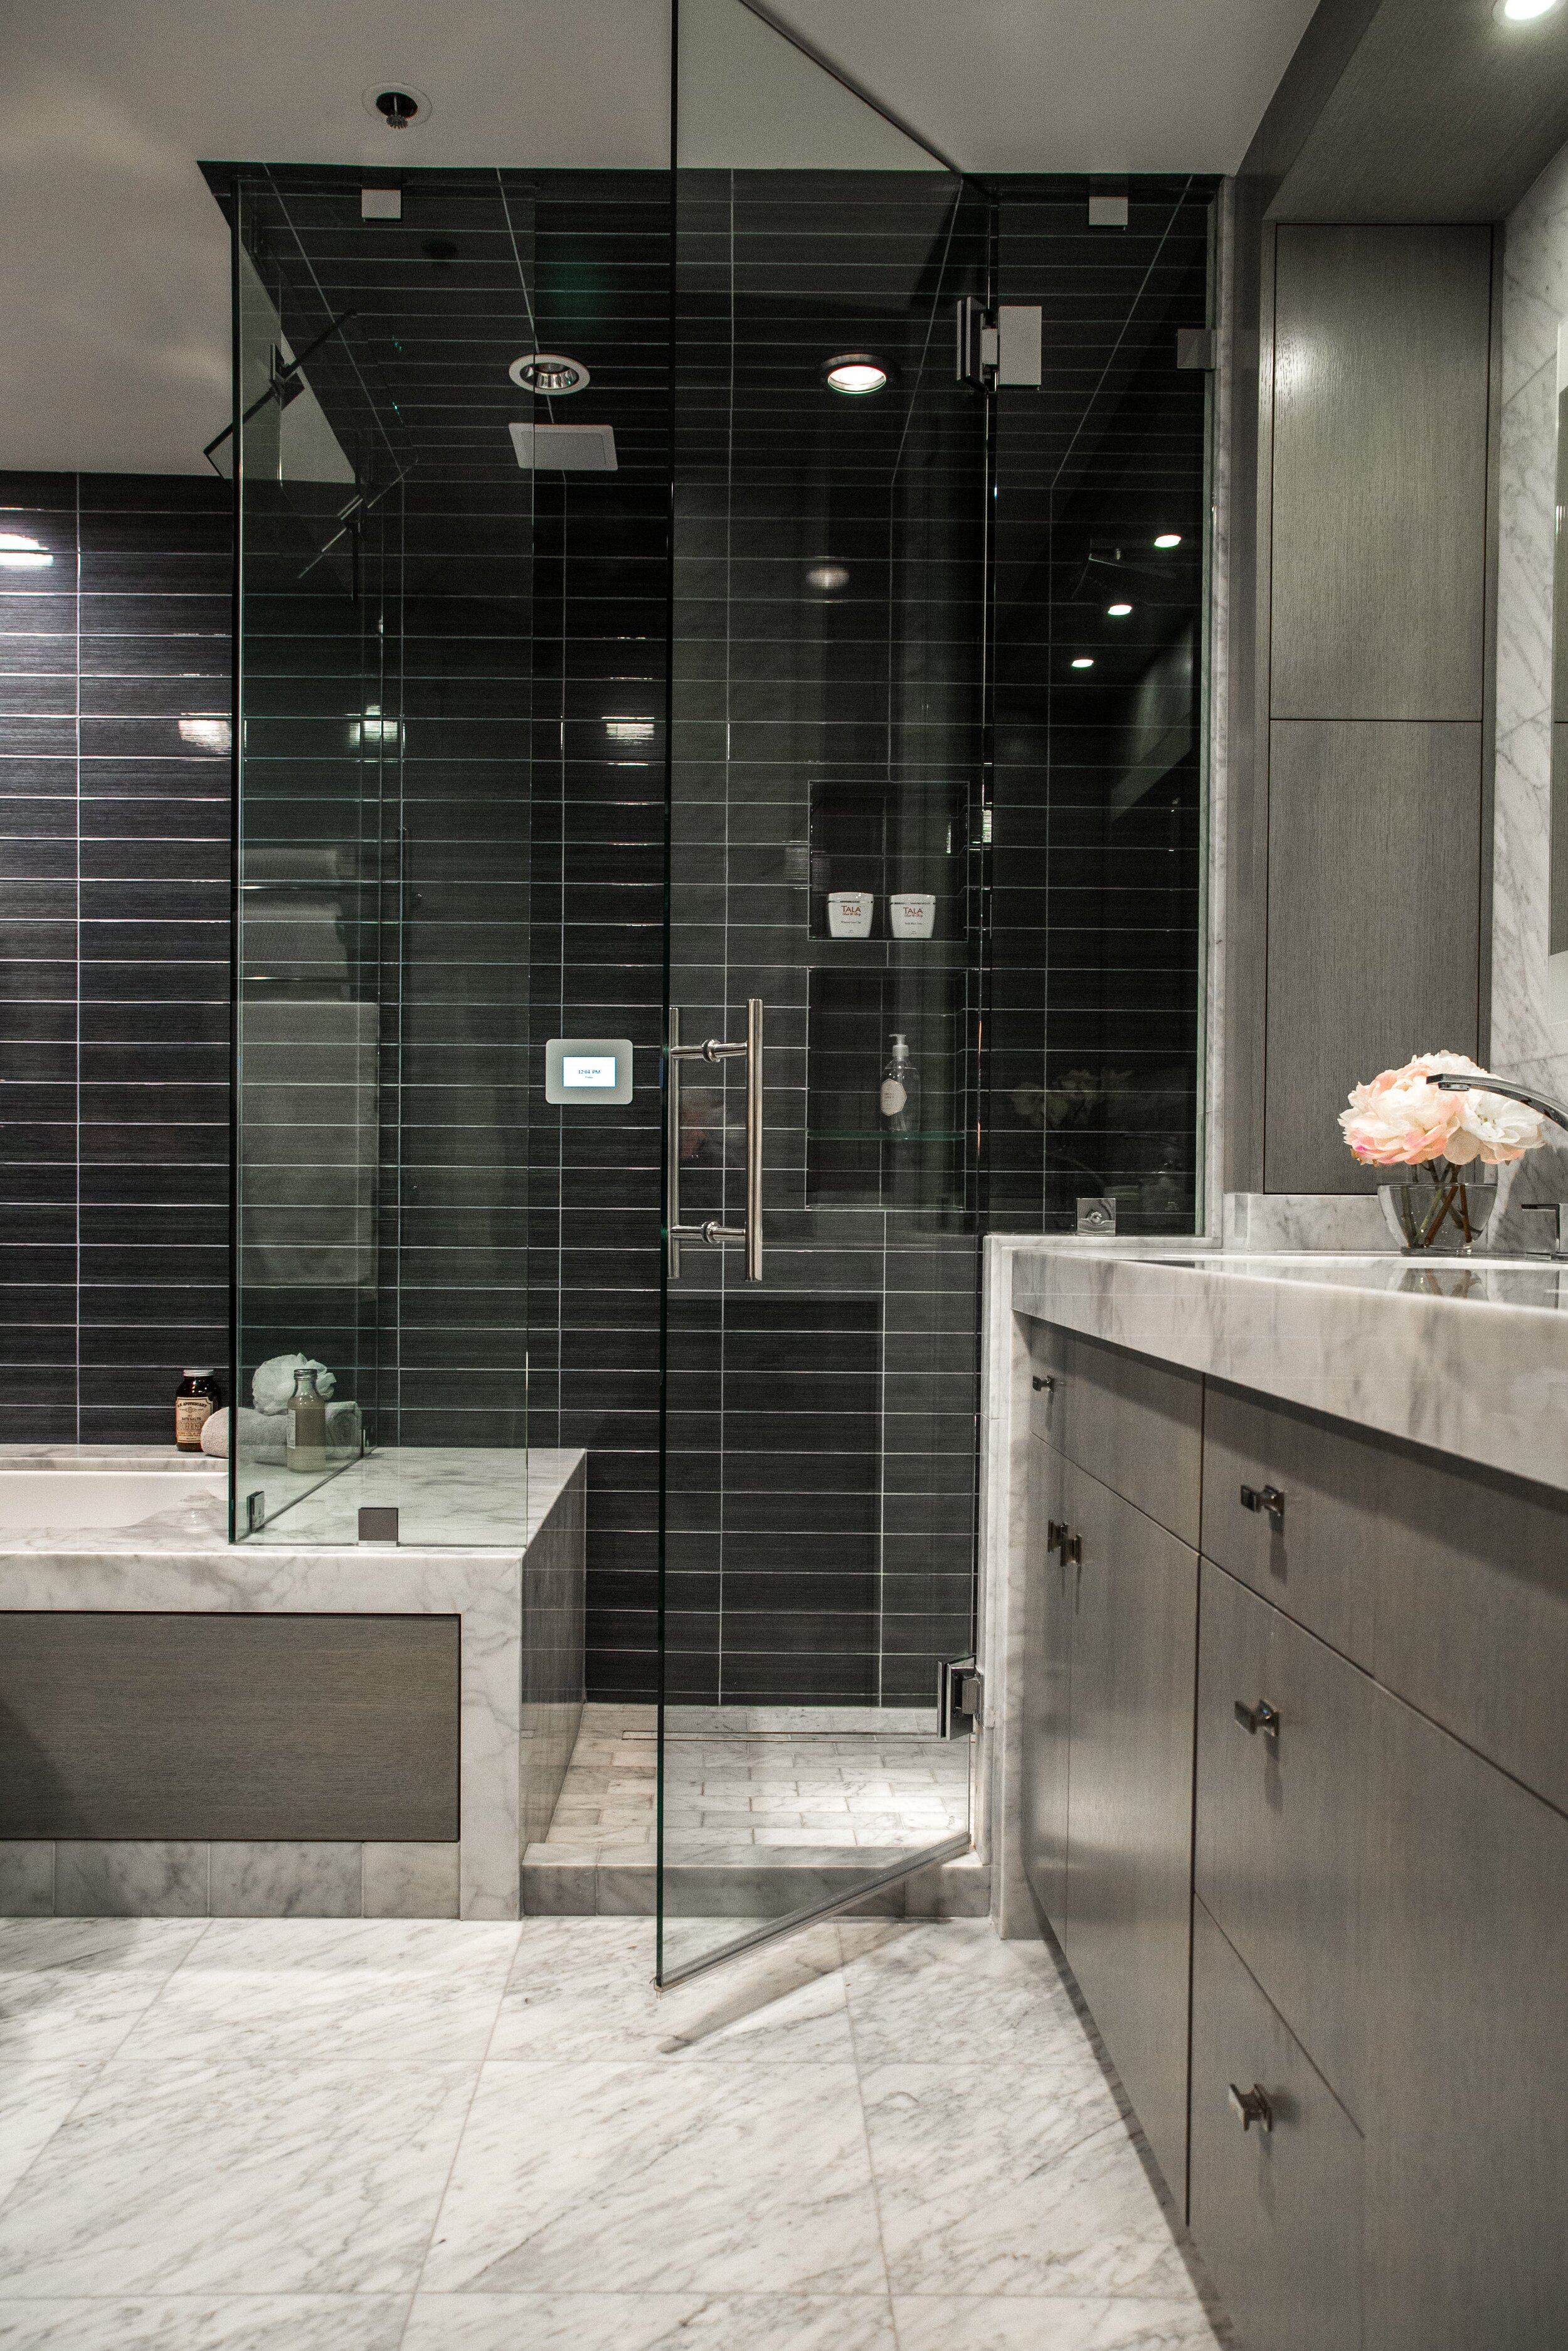 A West Hollywood condo bathroom designed by Lori with a Mr. Steam shower system. Photograph by  Bethany Nauert